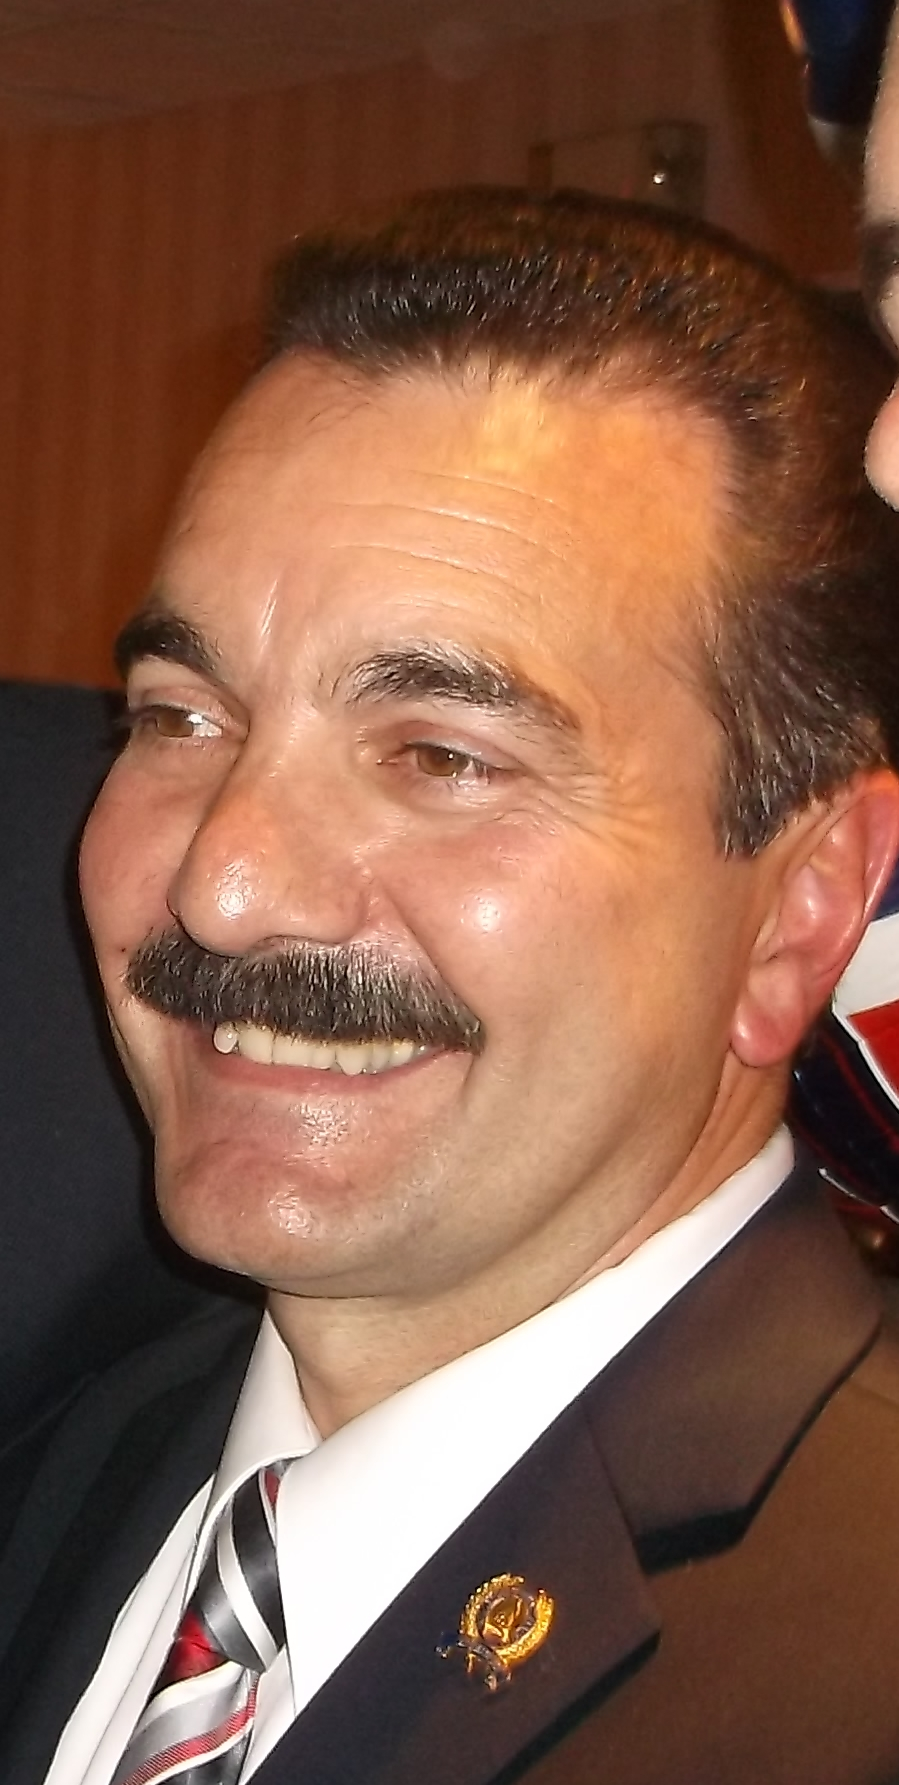 Dem leaders done with deal for Prieto